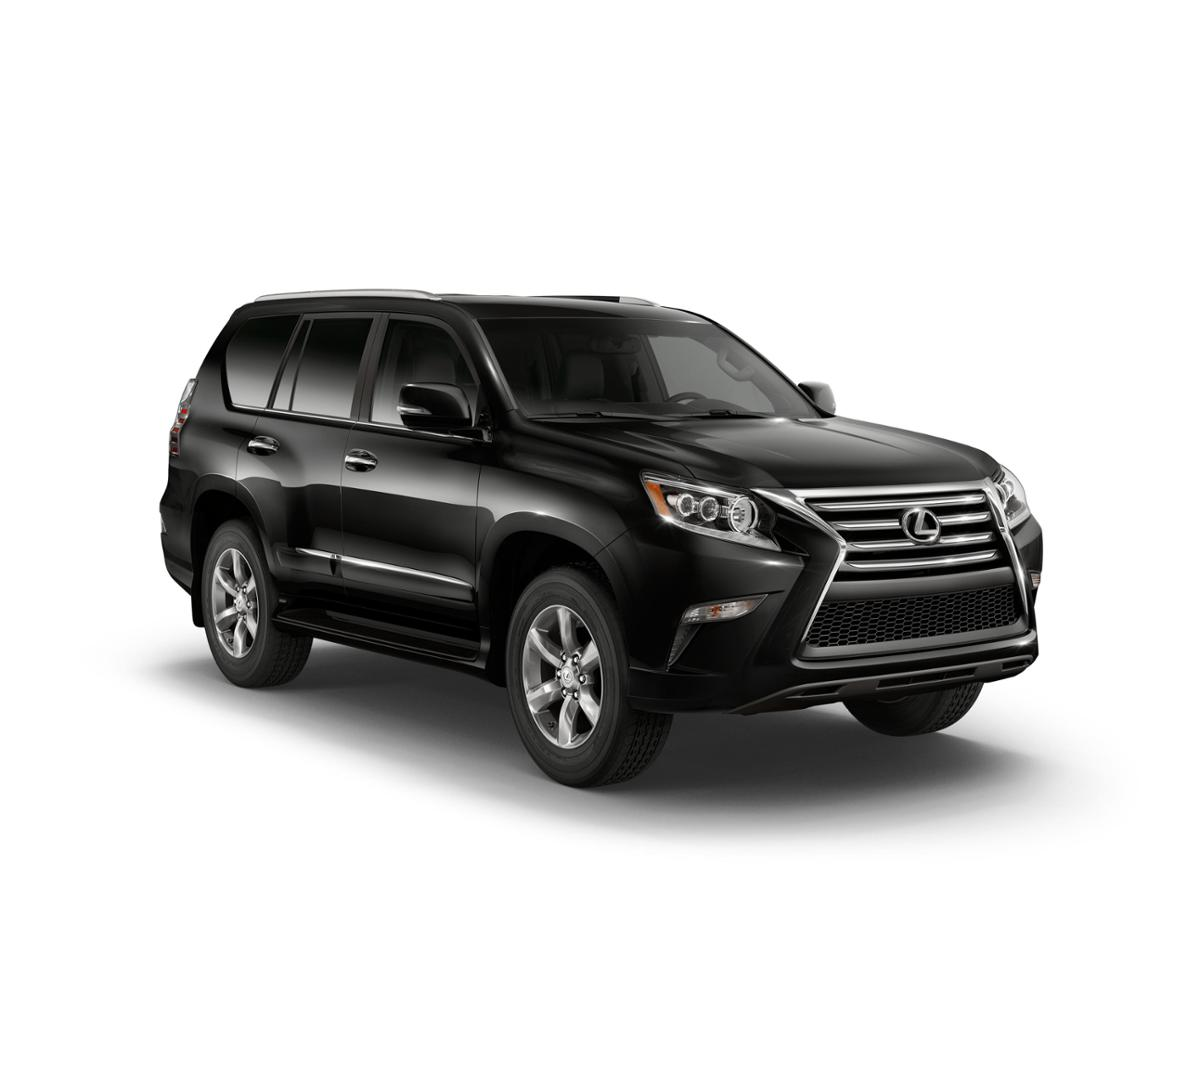 2019 Lexus GX 460 Vehicle Photo in Las Vegas, NV 89146